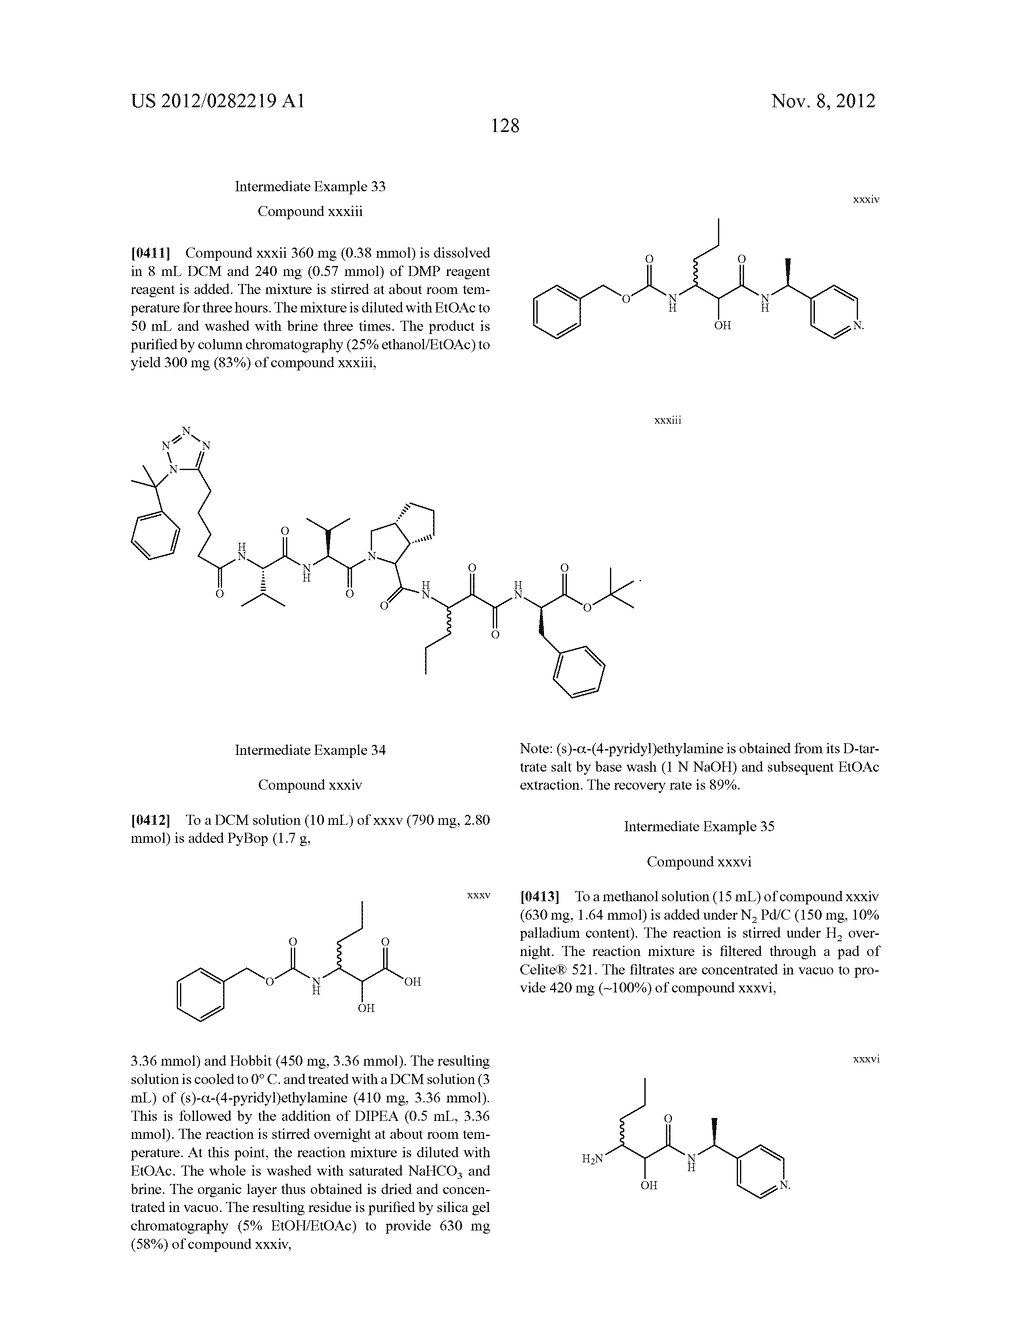 PEPTIDOMIMETIC PROTEASE INHIBITORS - diagram, schematic, and image 143